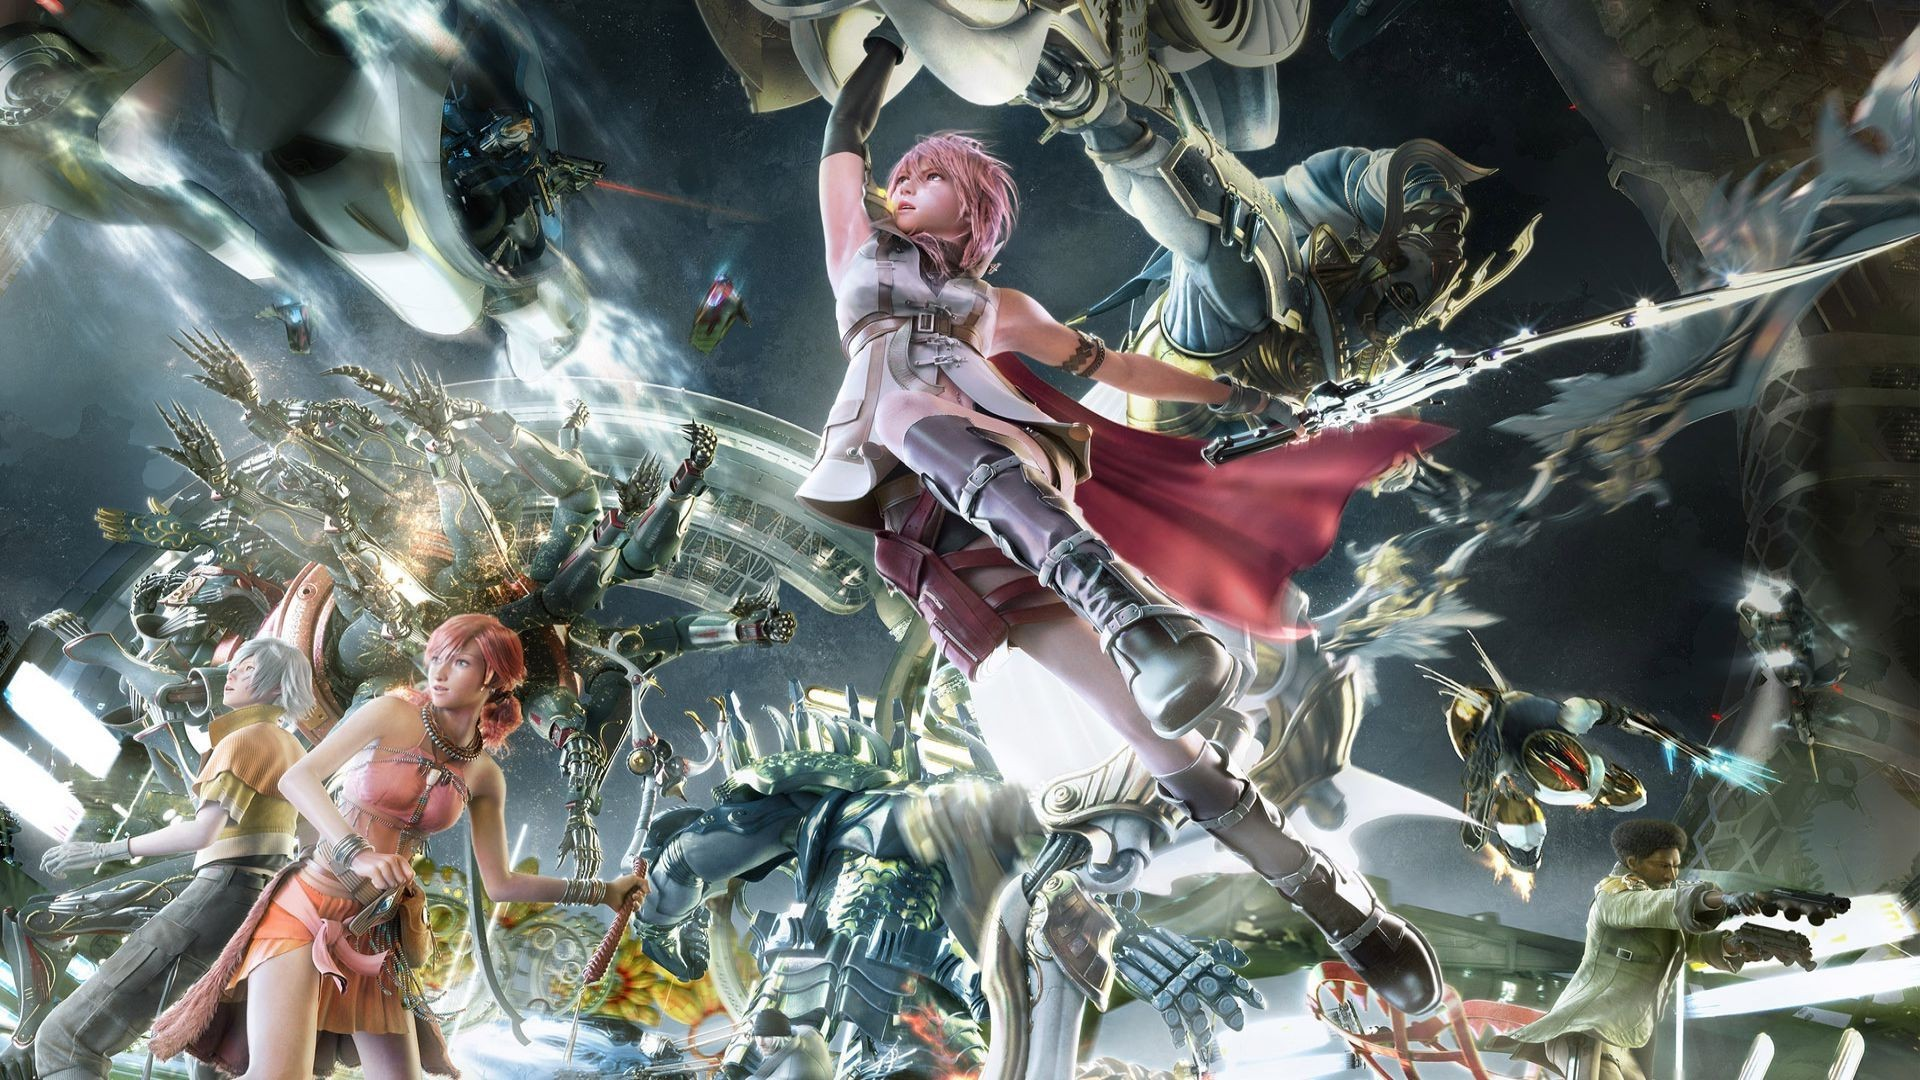 Final fantasy x wallpapers hd 77 images - Fantasy wallpaper pc ...